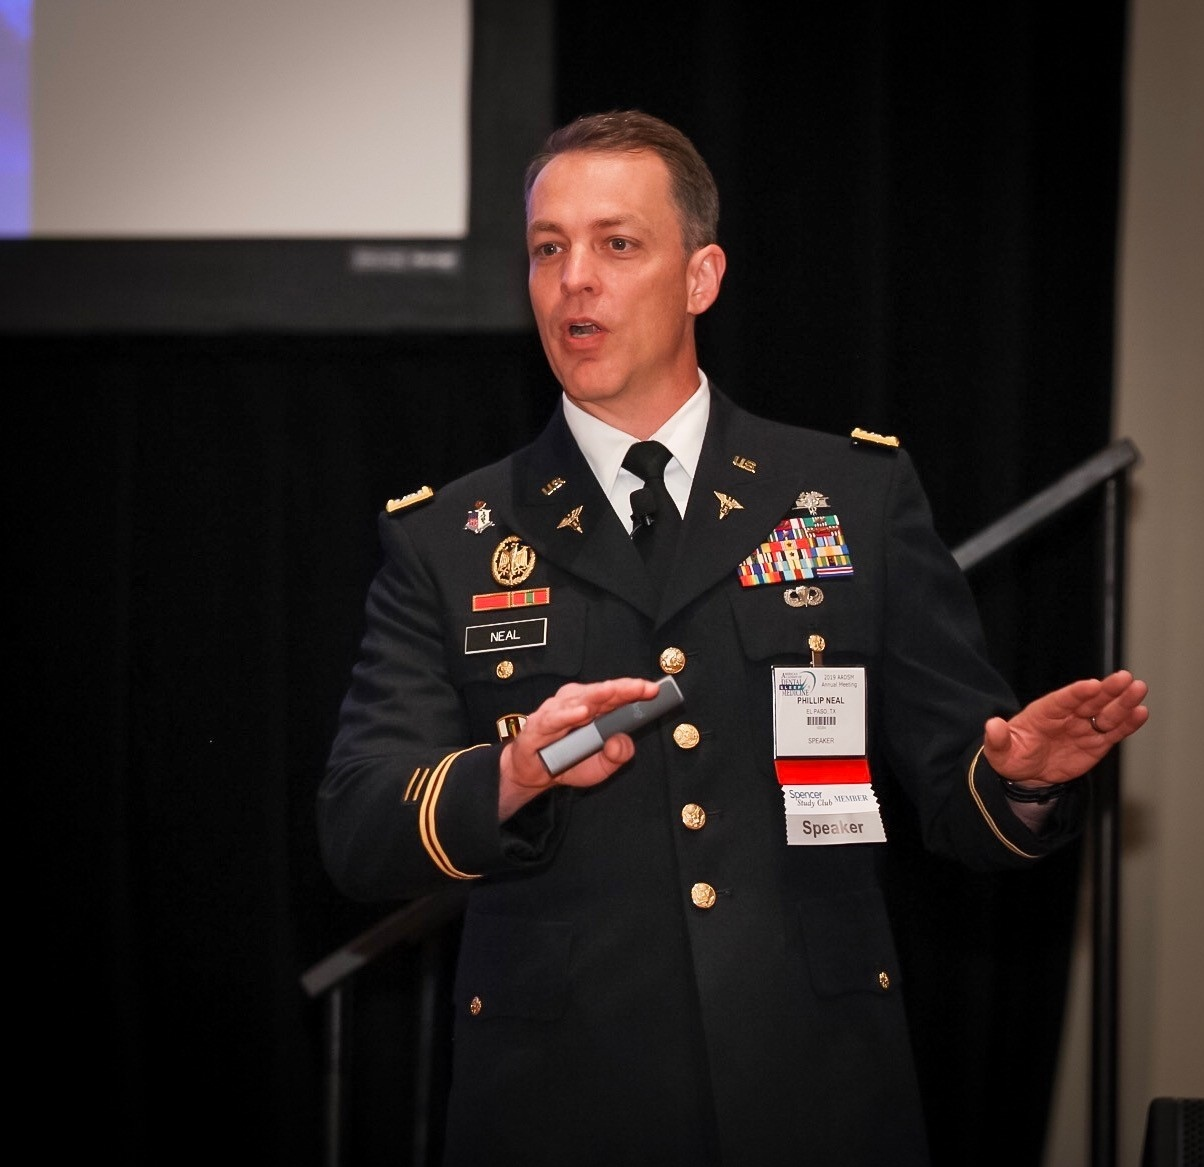 Lt. Colonel Neal delivers the keynote address at 2019 ADSM Annual Meeting